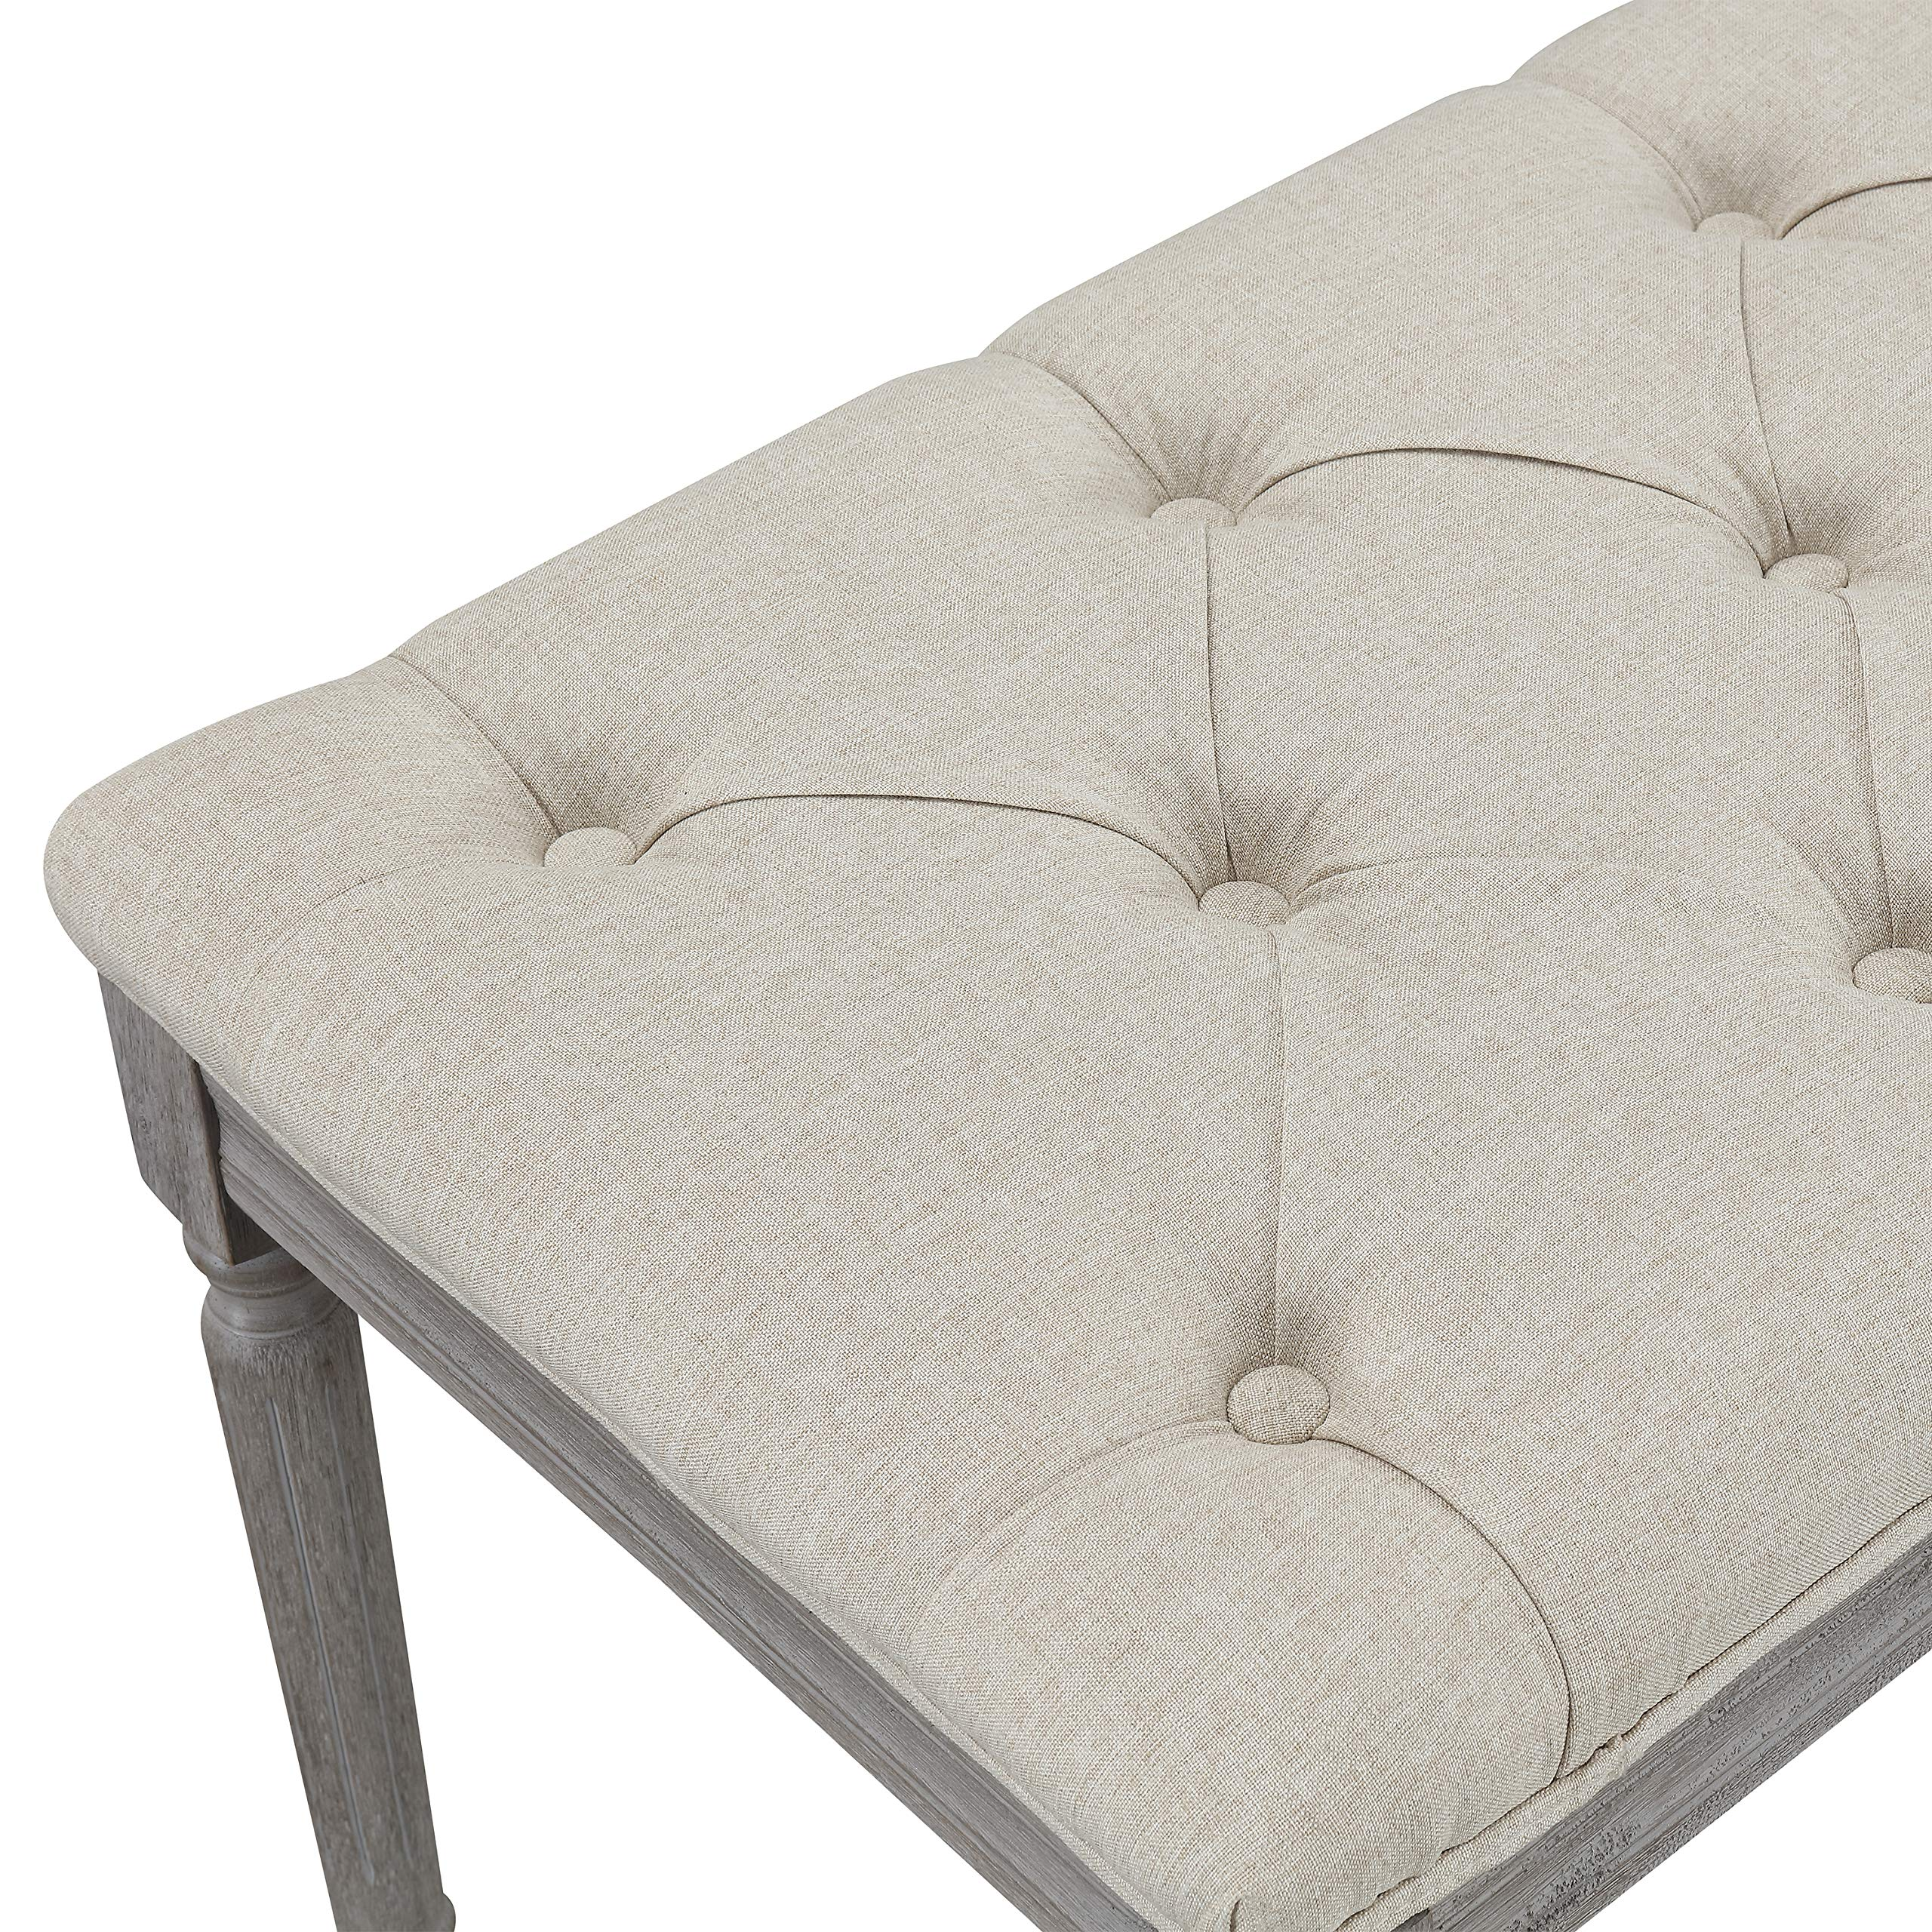 Jack Button Tufted Light Beige Upholstered Bench with Weathered Gray Legs by CHL CHRISTIES HOME LIVING (Image #6)